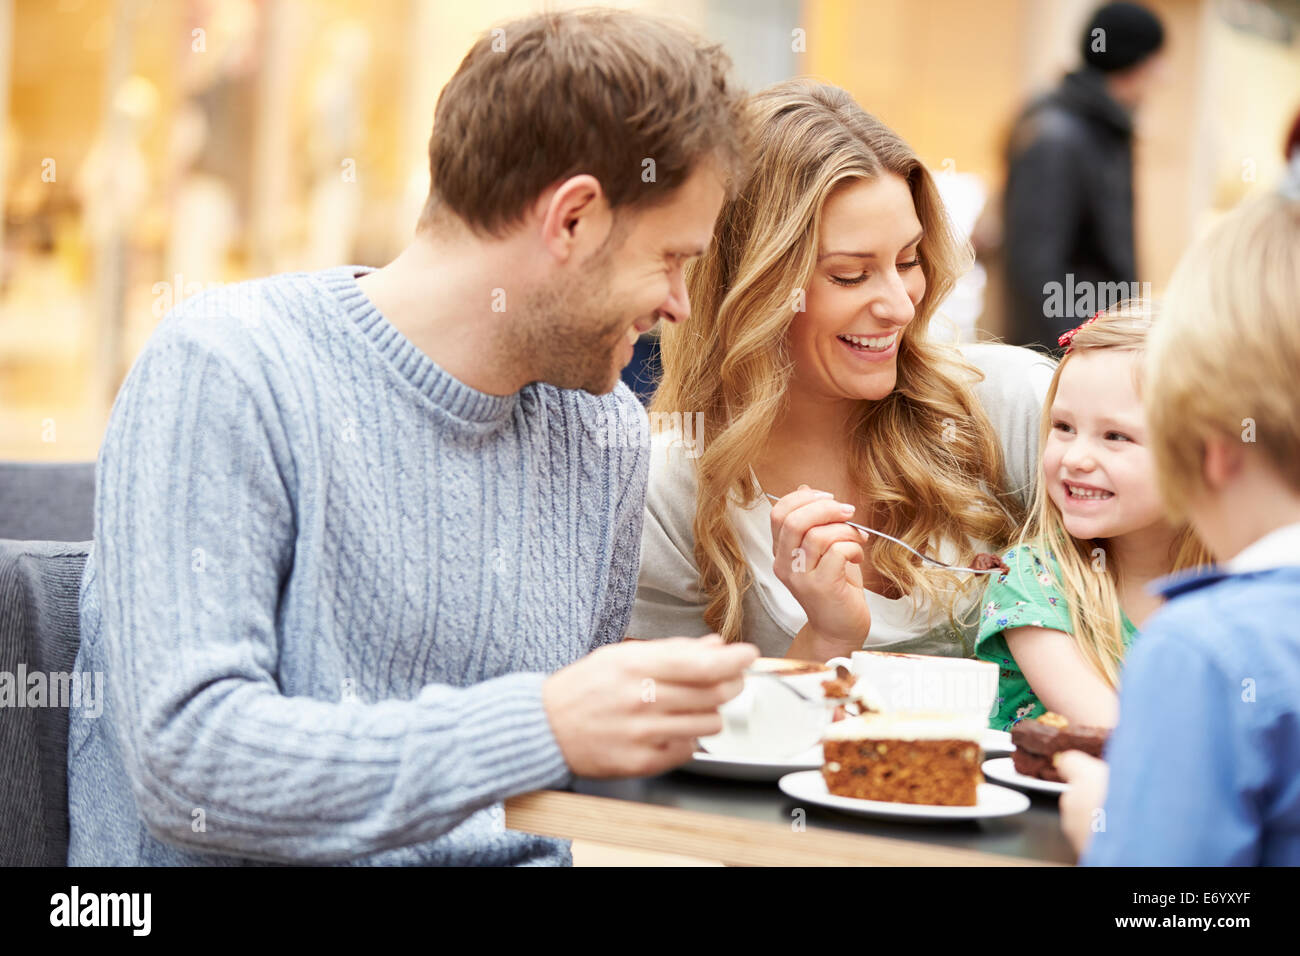 Snack en famille au café ensemble Photo Stock